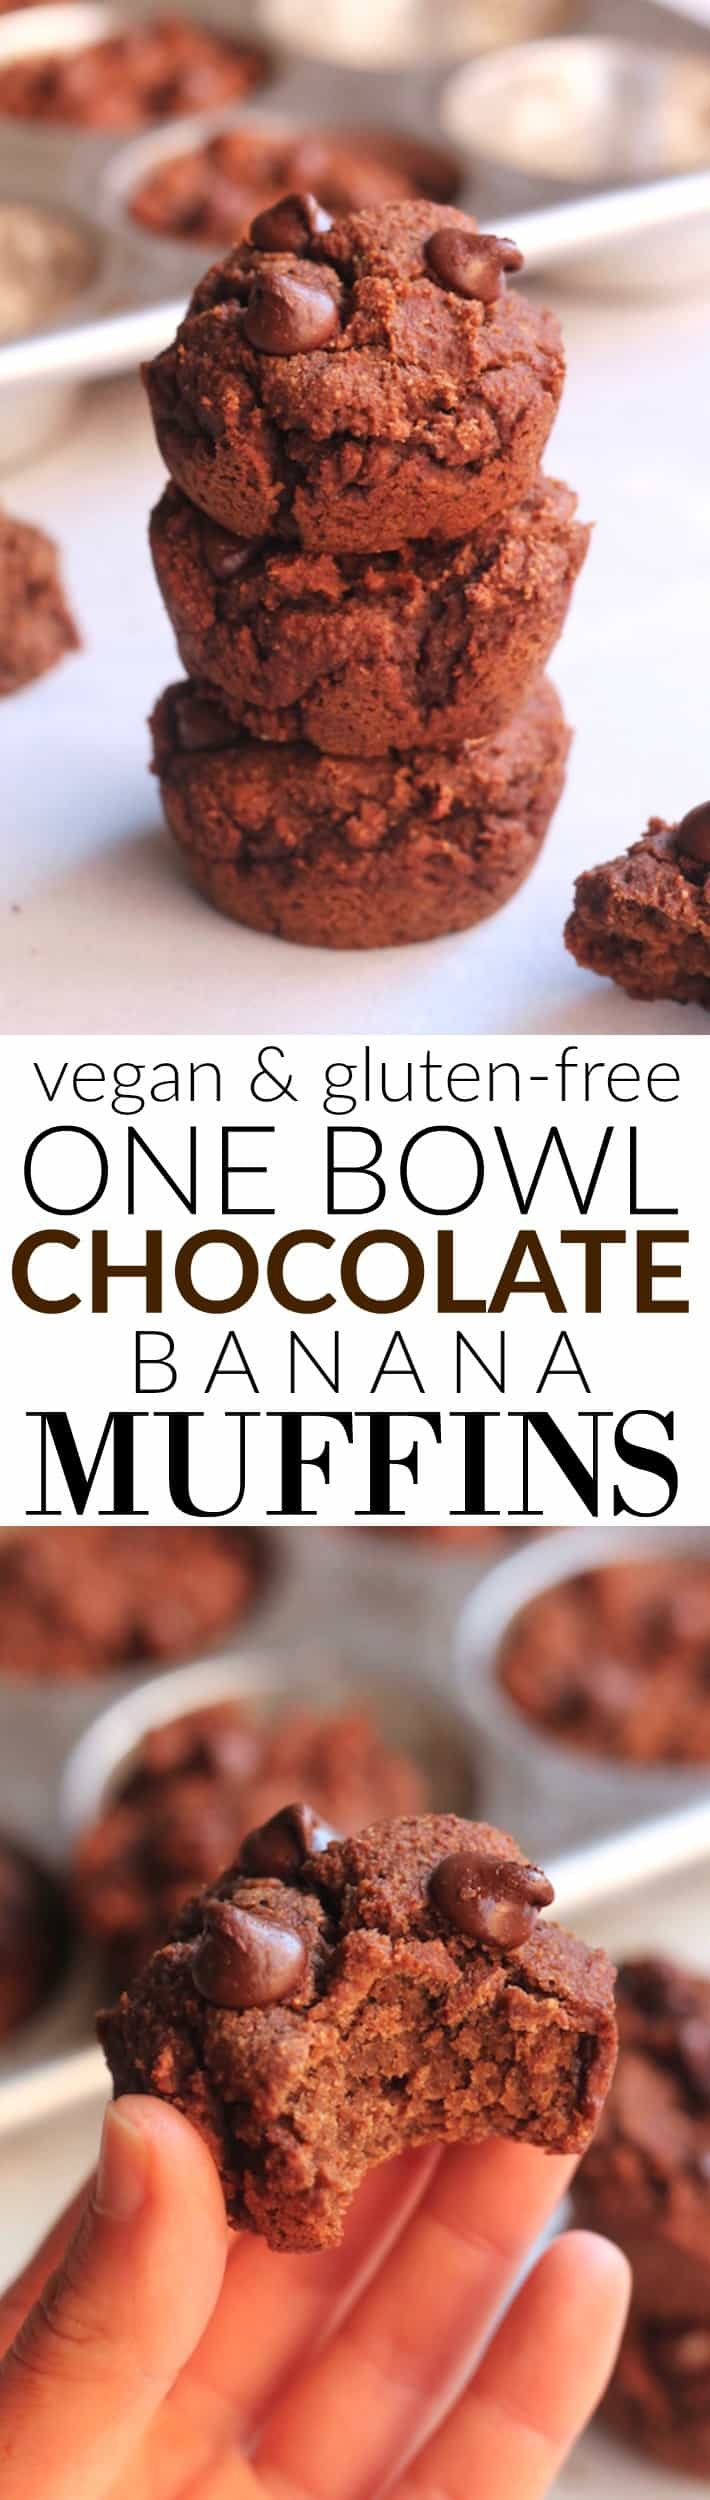 These One Bowl Chocolate Banana Muffins are super moist and secretly healthy! Made with whole grain oat flour, almond flour, and sweetened naturally with bananas and dates, they make the perfect healthy and delicious treat or snack. Vegan and Gluten-free!